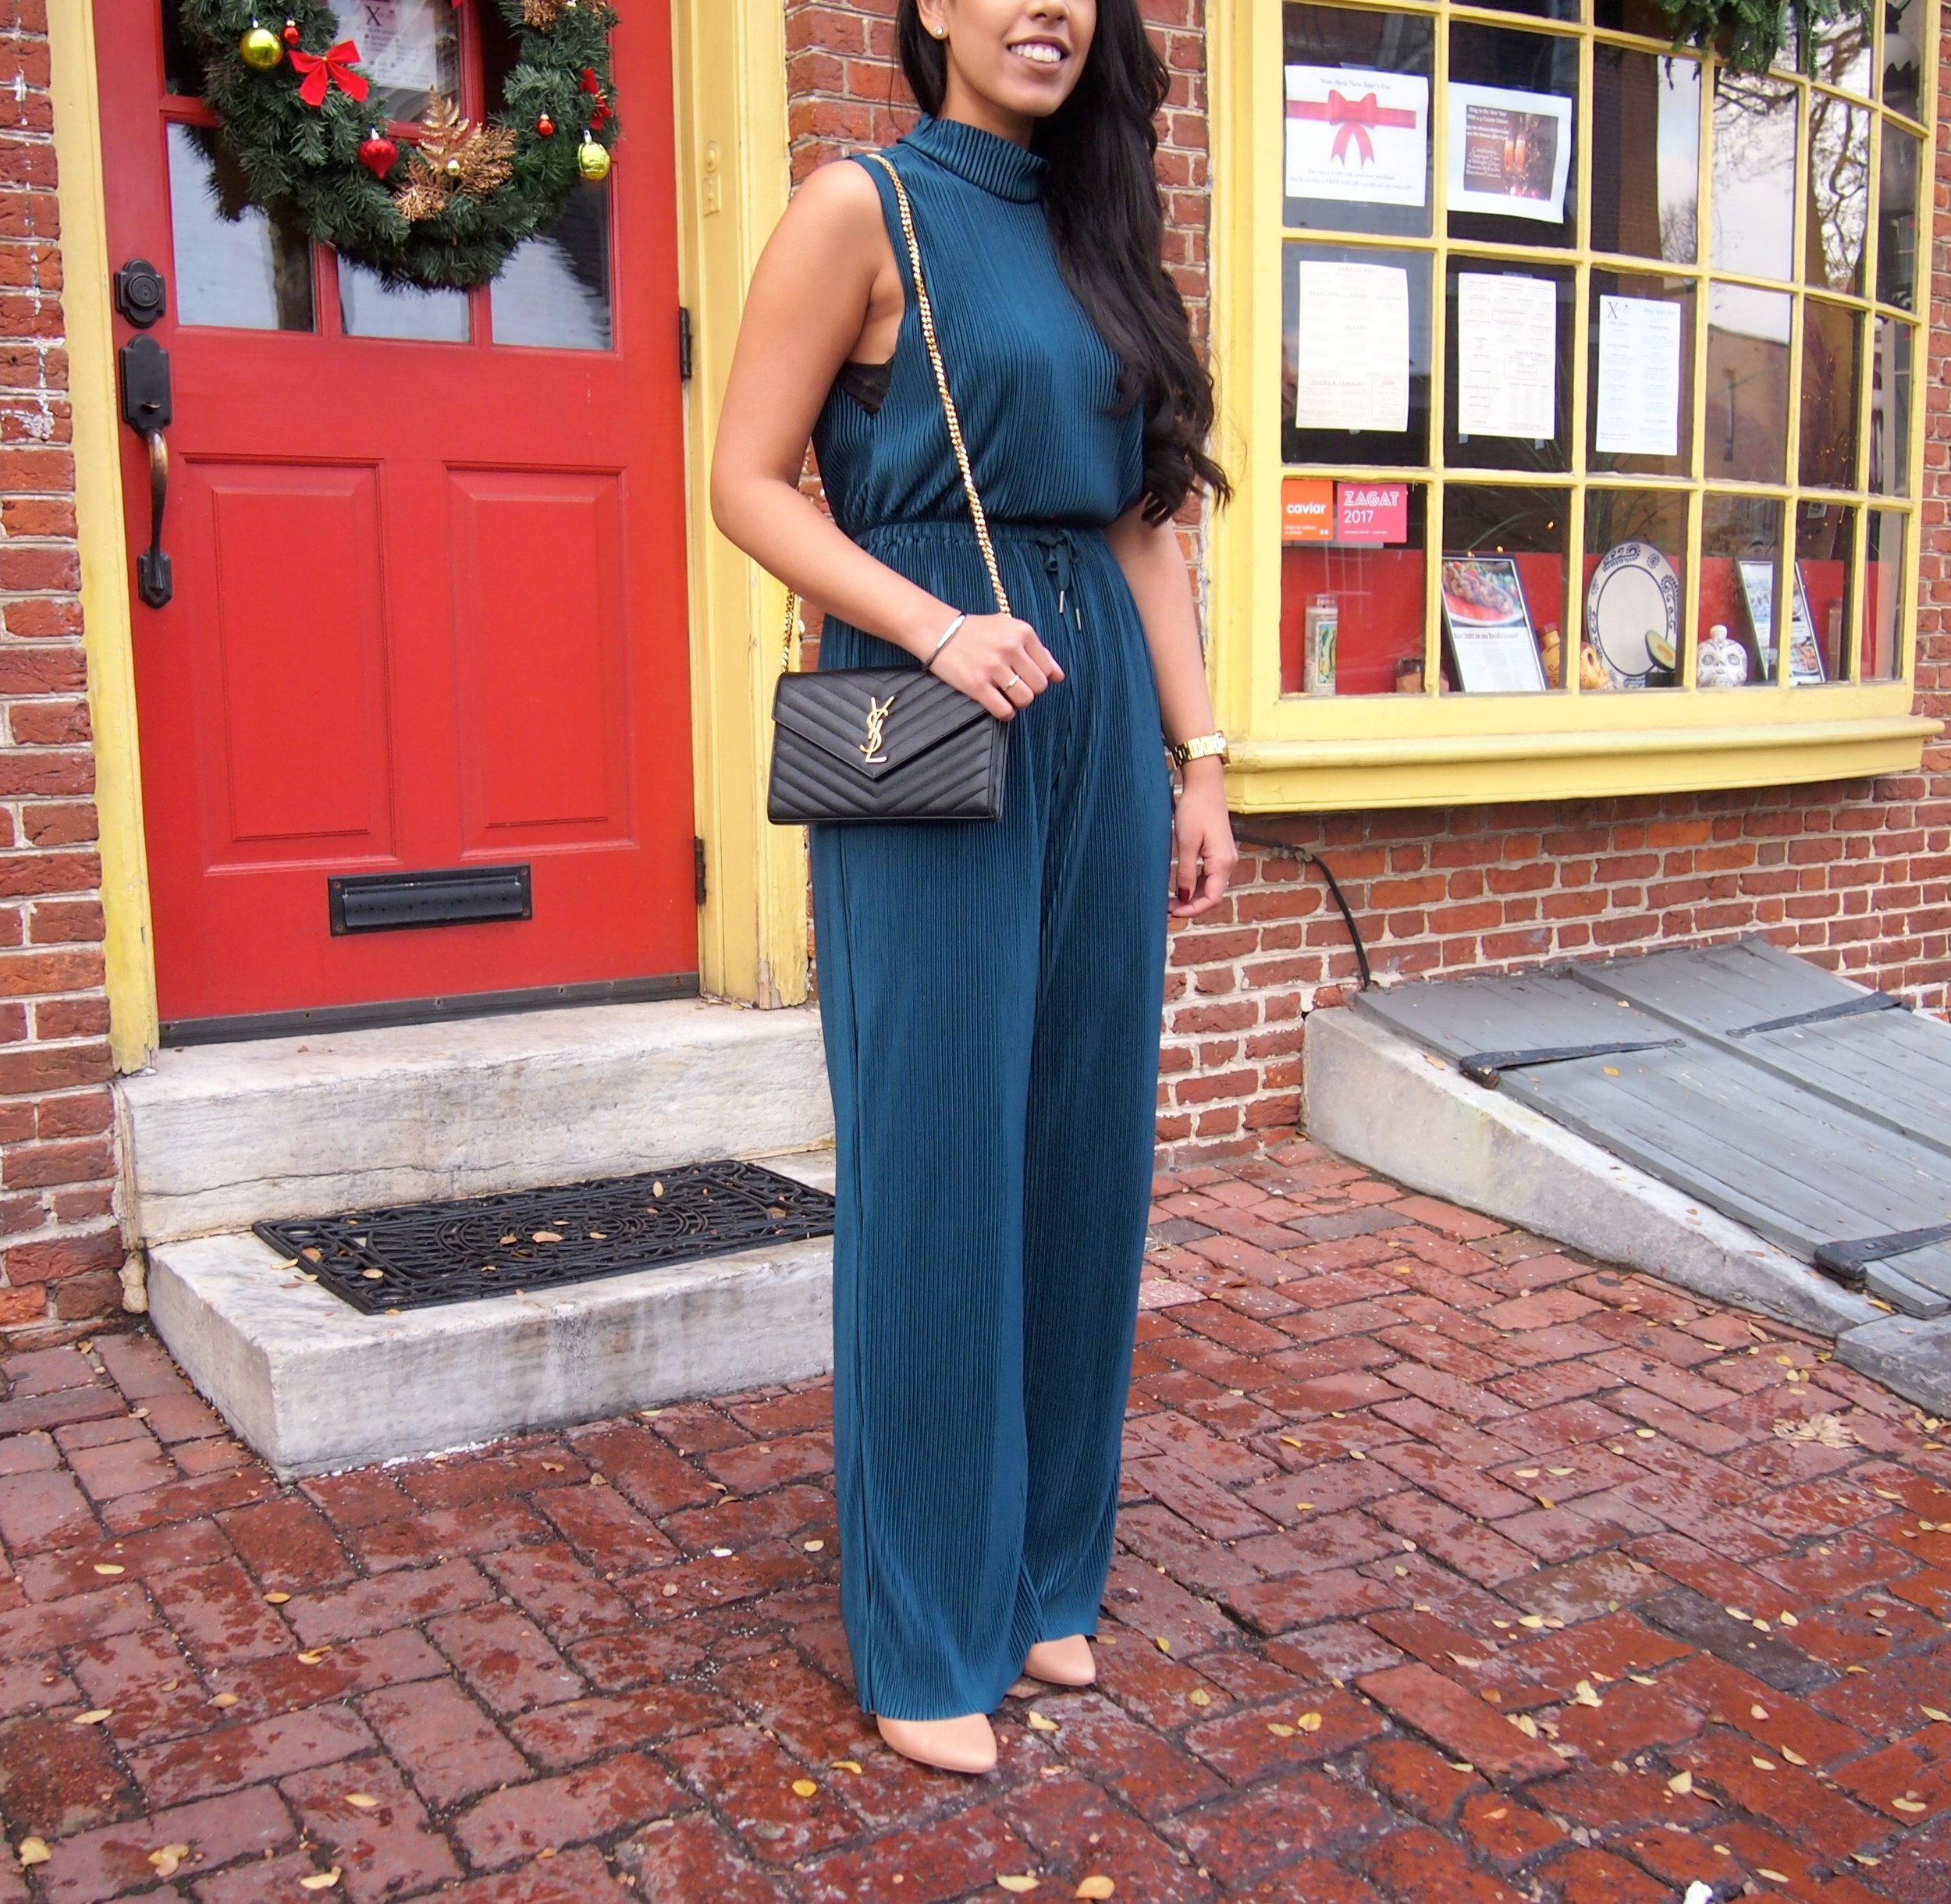 Urban-Outfitters-Jumpsuit-Holiday-Outfit-Idea.jpg